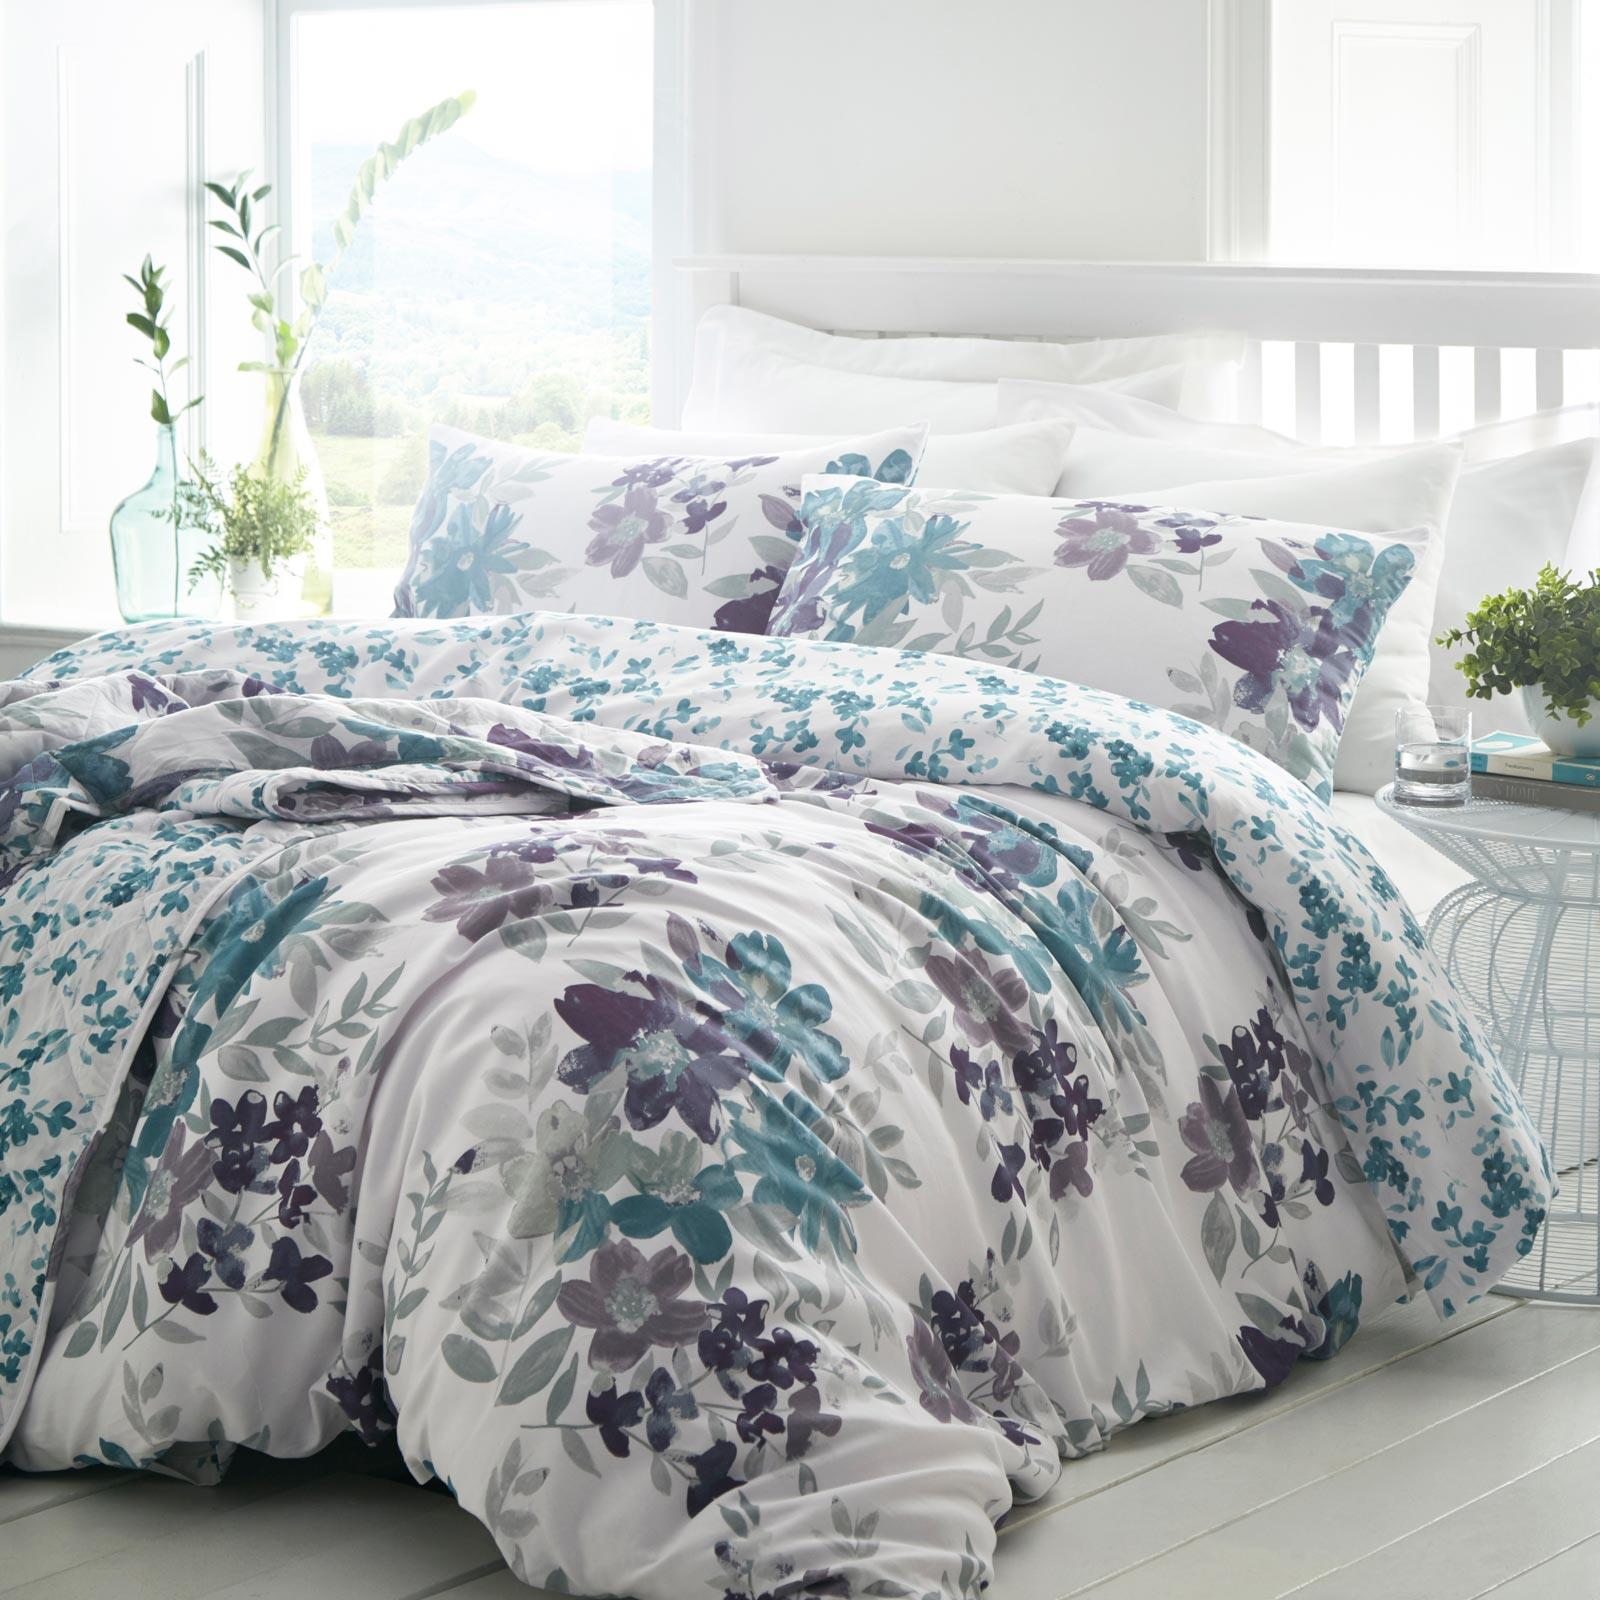 Teal Duvet Covers Floral 200 Thread Count Cotton White Quilt Cover Bedding Sets Ebay